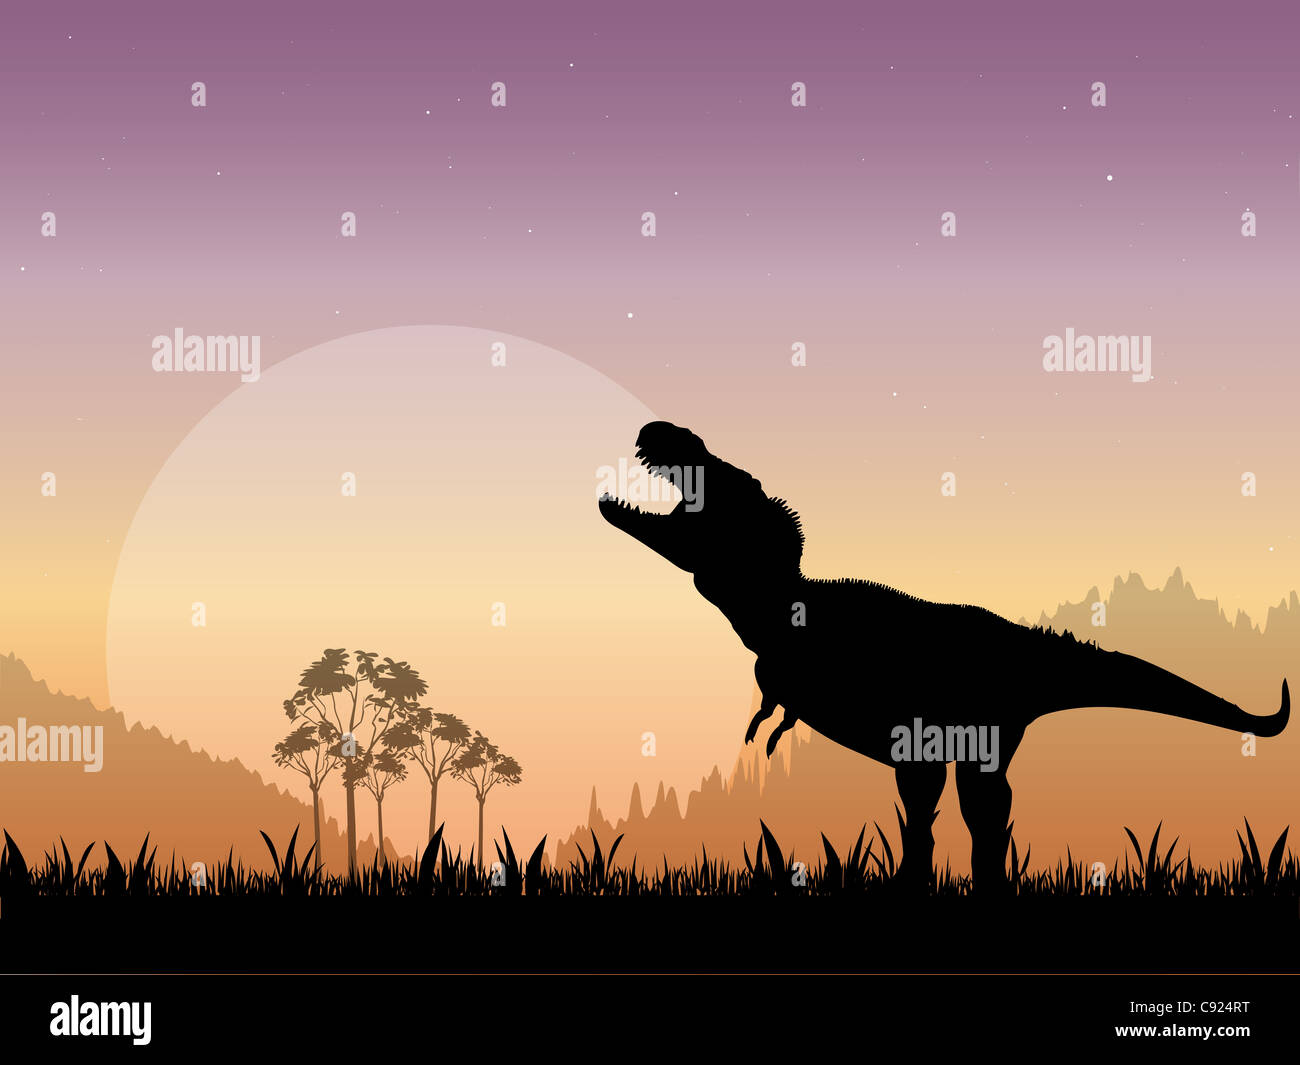 The Silhouette of a Tyrannosaurus Rex Roaring in front of a dull moon with a starry night sky as the backdrop. Stock Photo